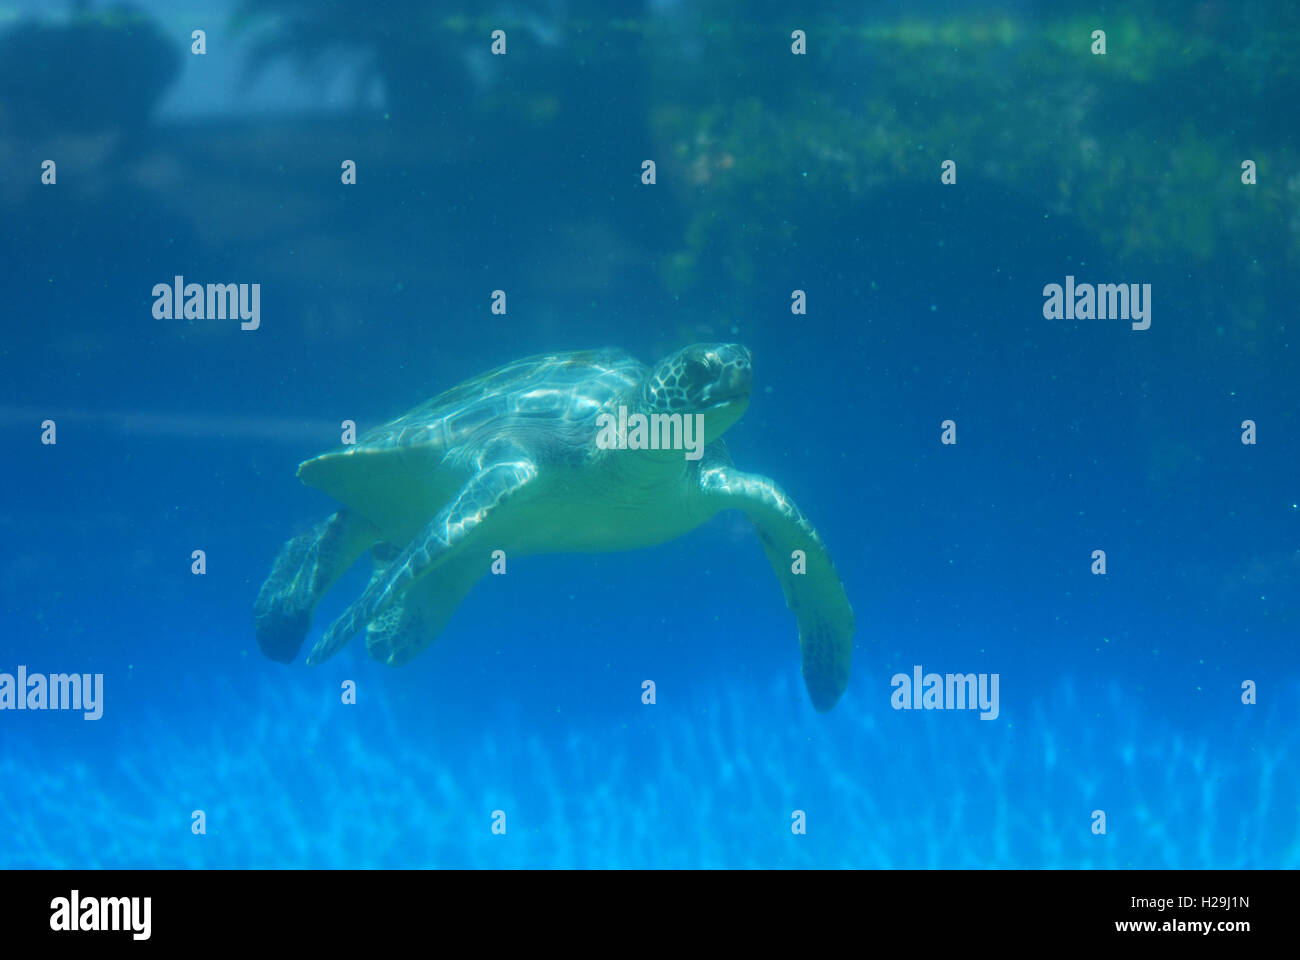 Sea turtle moving along under the water's surface. - Stock Image